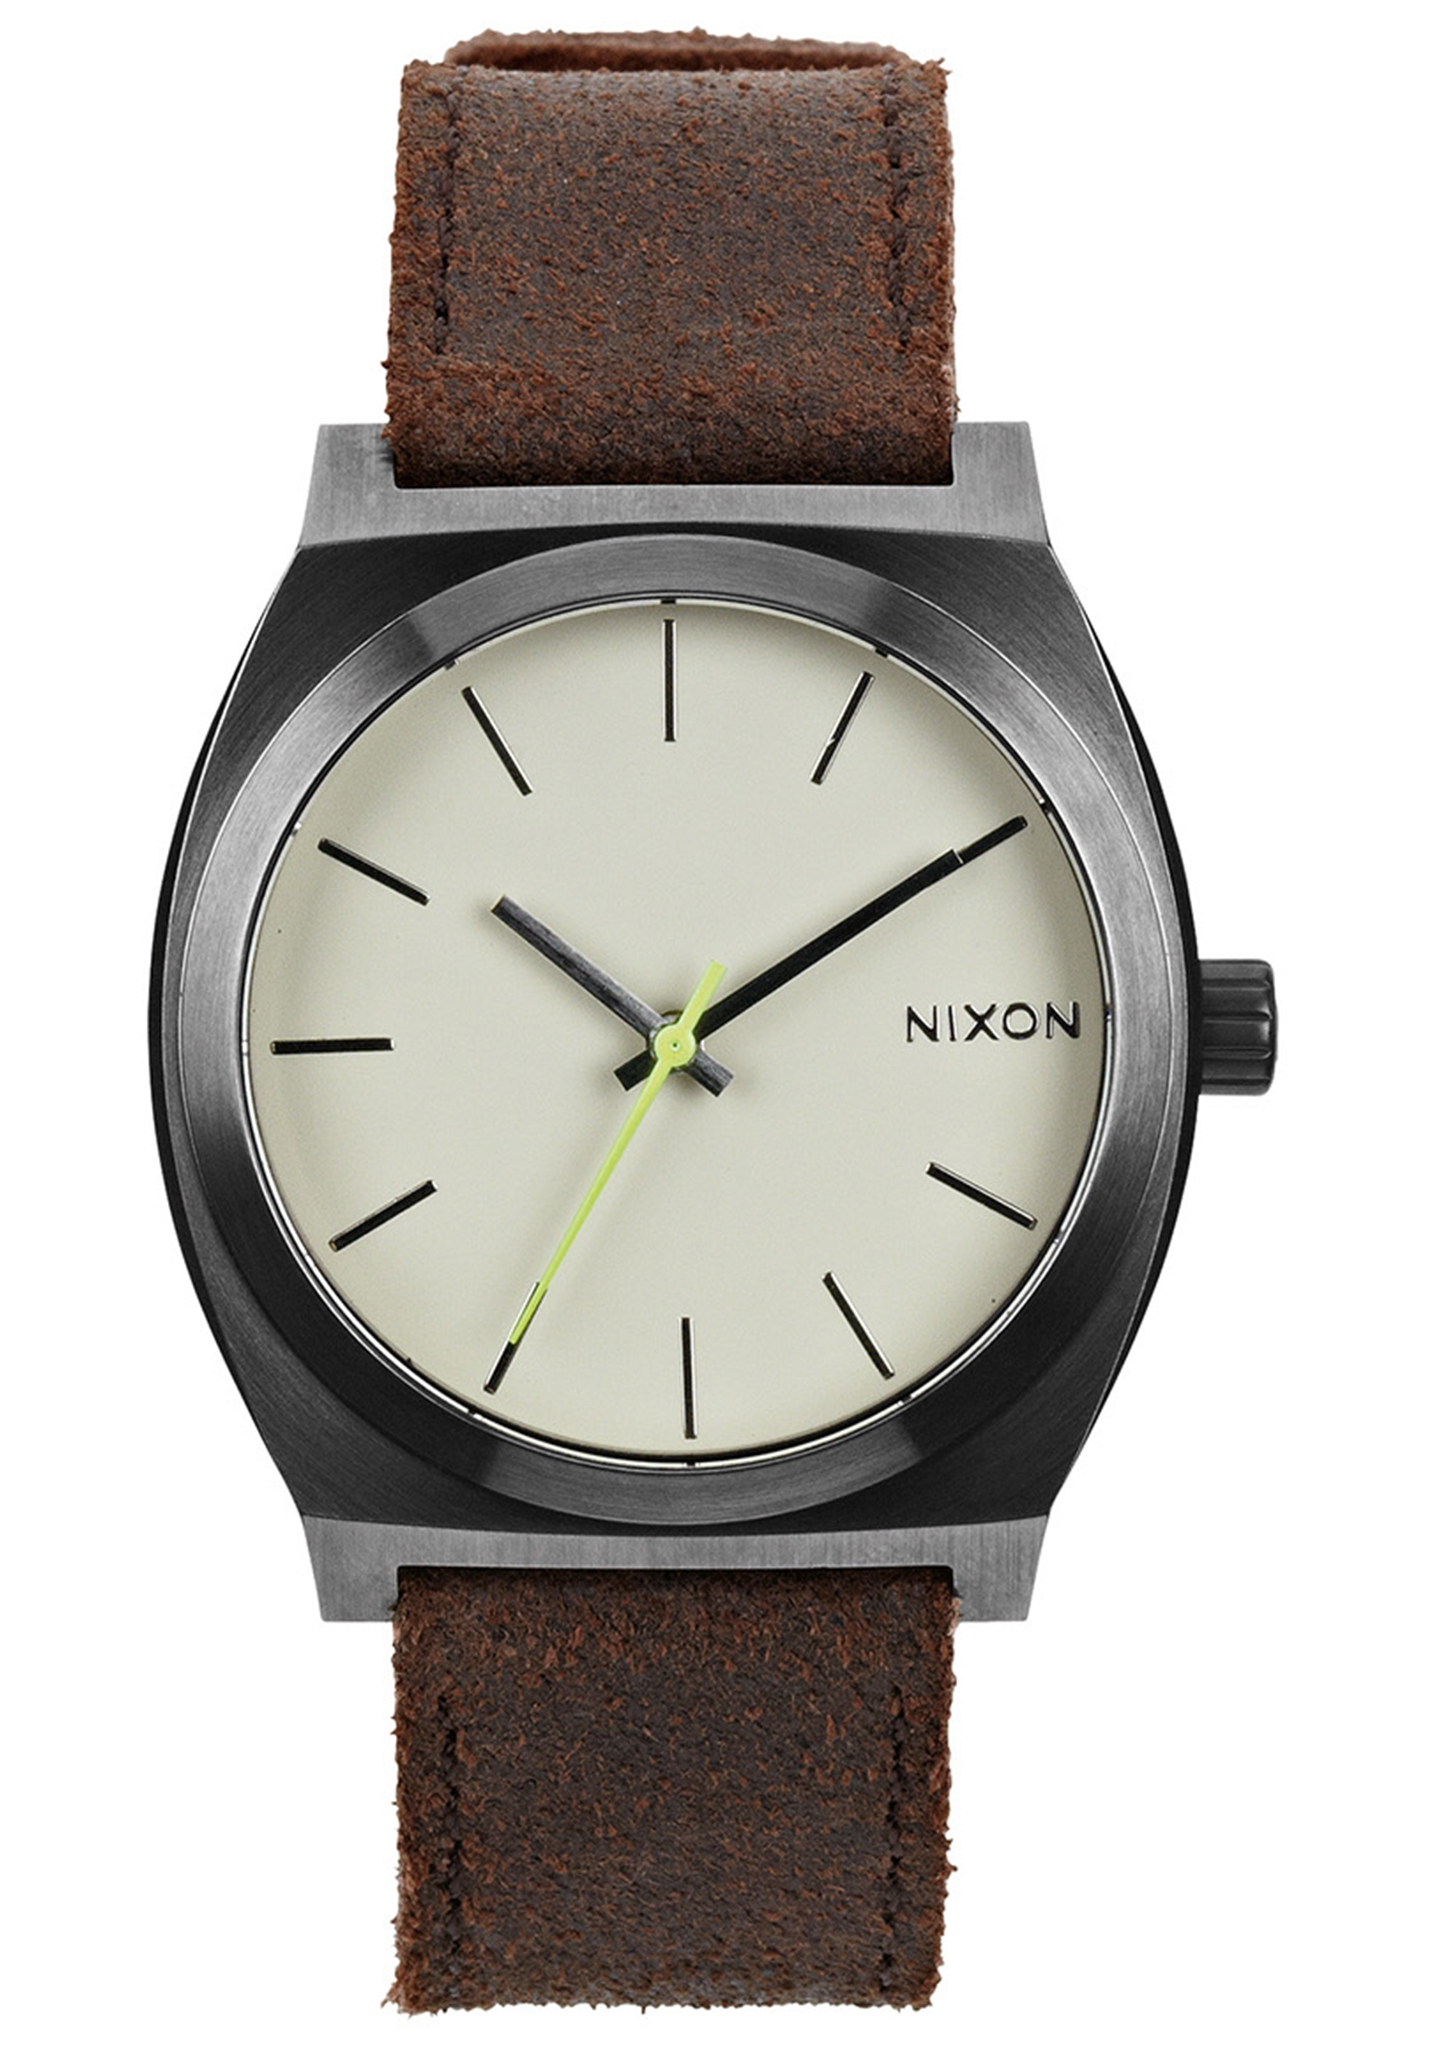 nixon time teller herren damen uhr accessoire schmuck. Black Bedroom Furniture Sets. Home Design Ideas